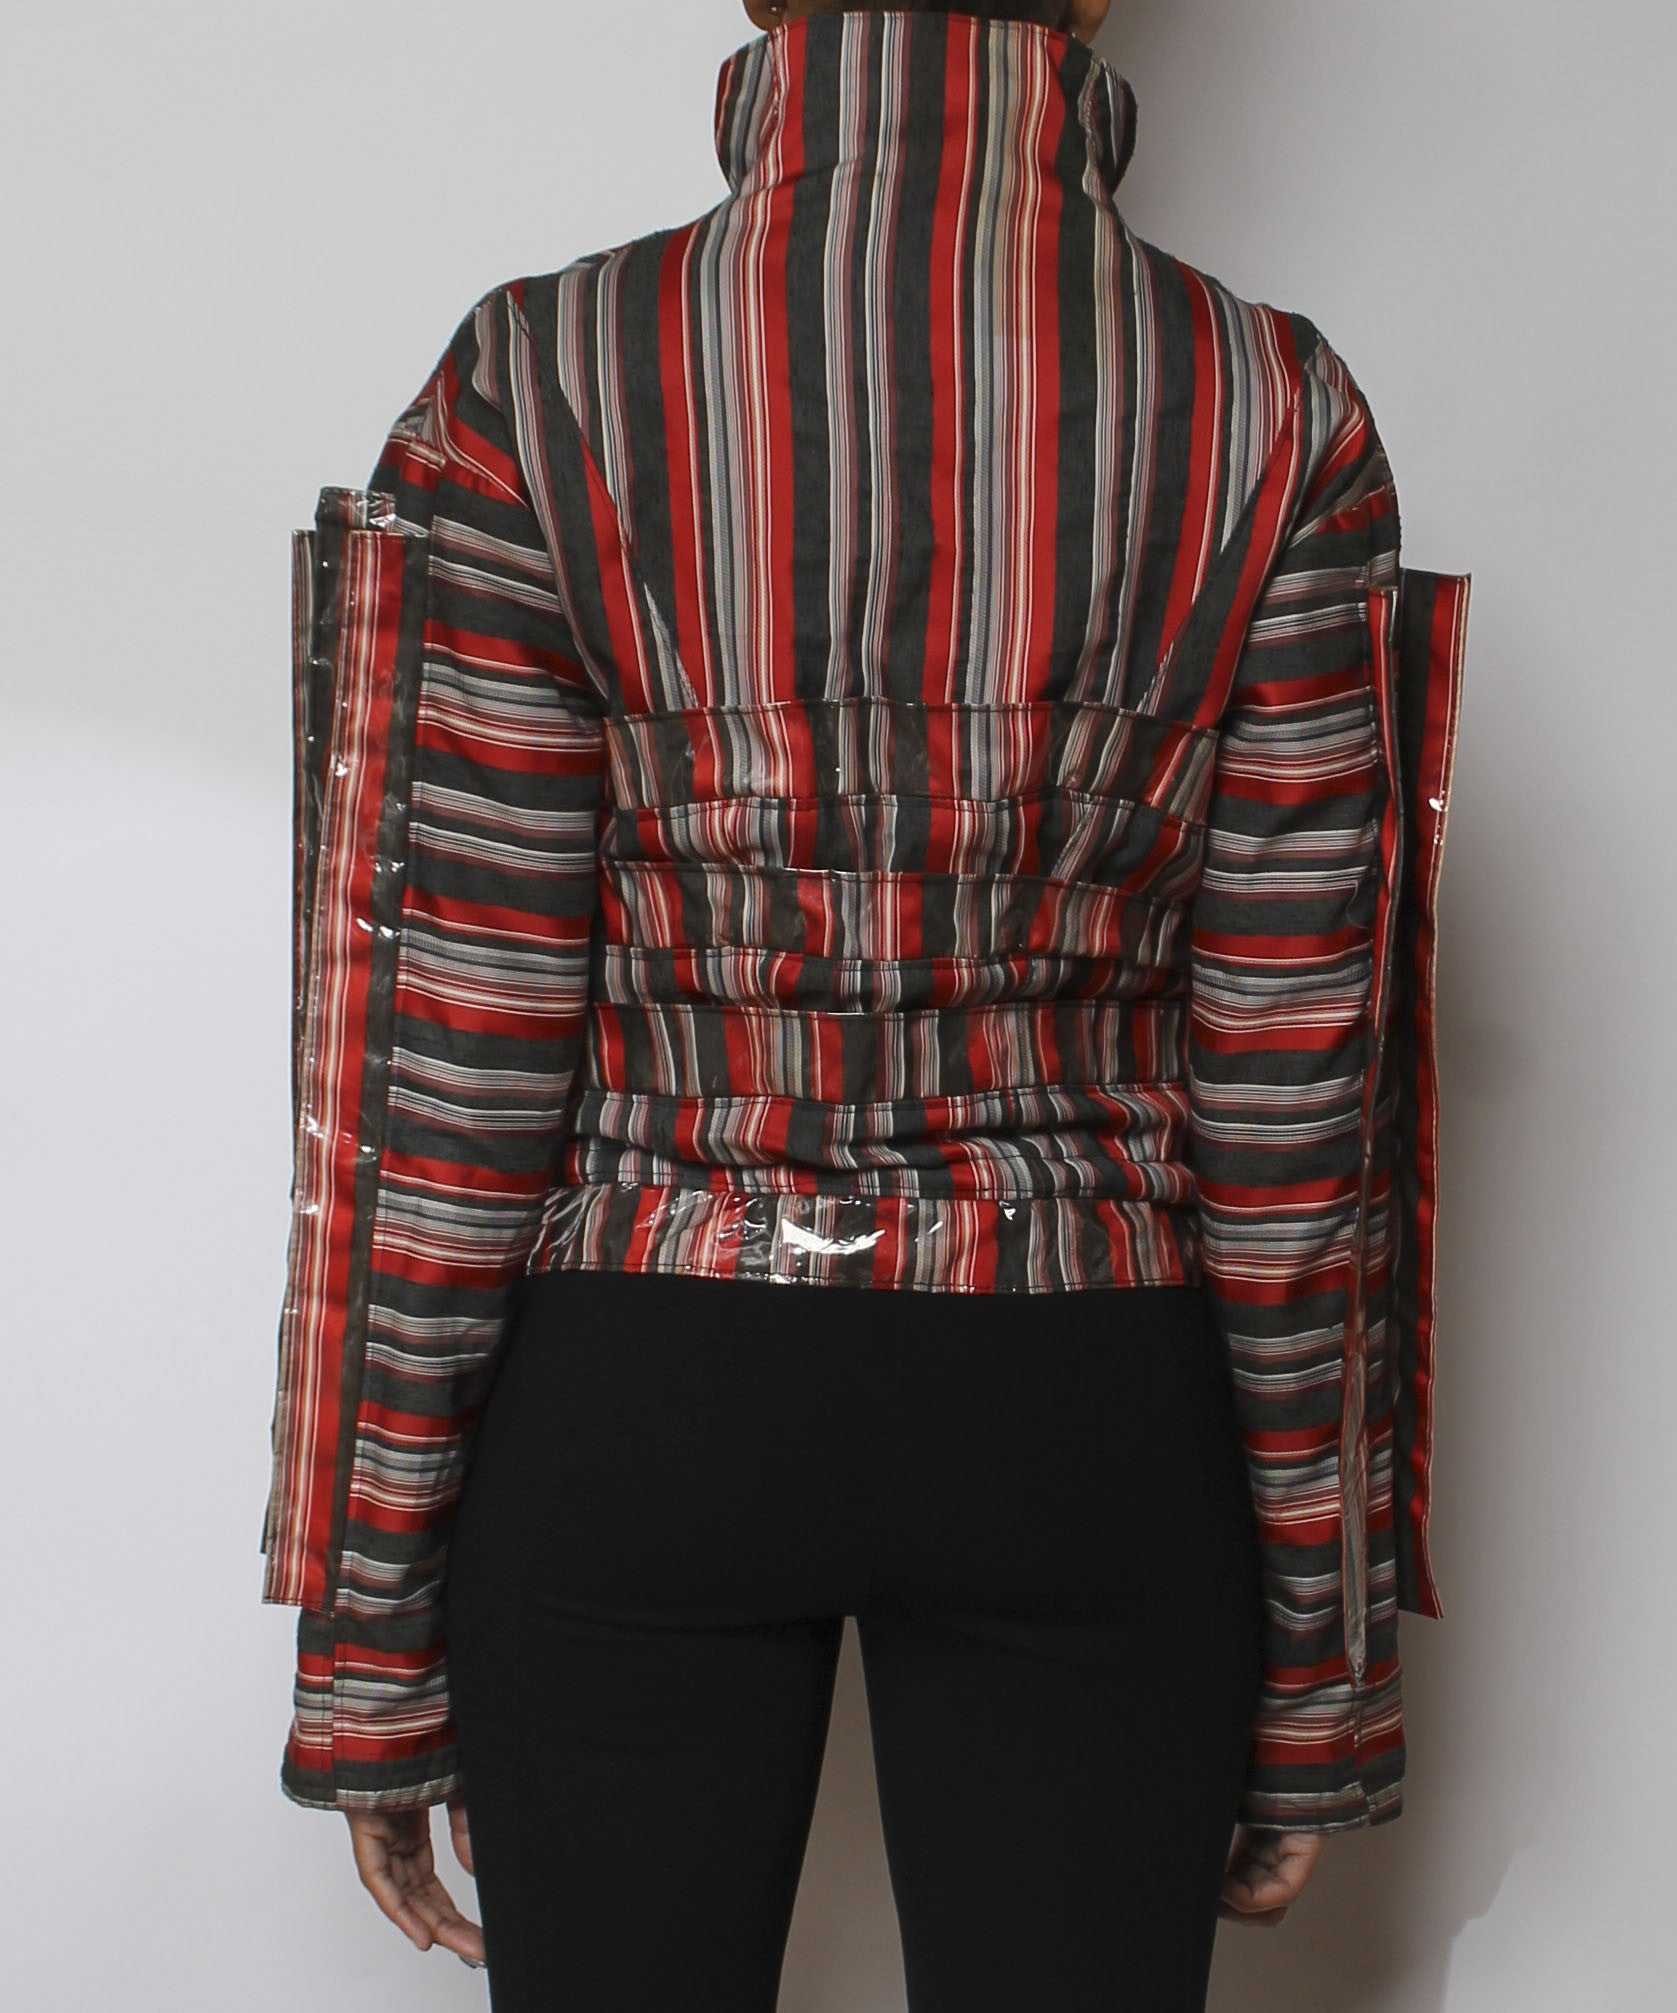 Efthemios Konstantine 1980s Striped Red Vinyl Strip Jacket - C.Madeleine's